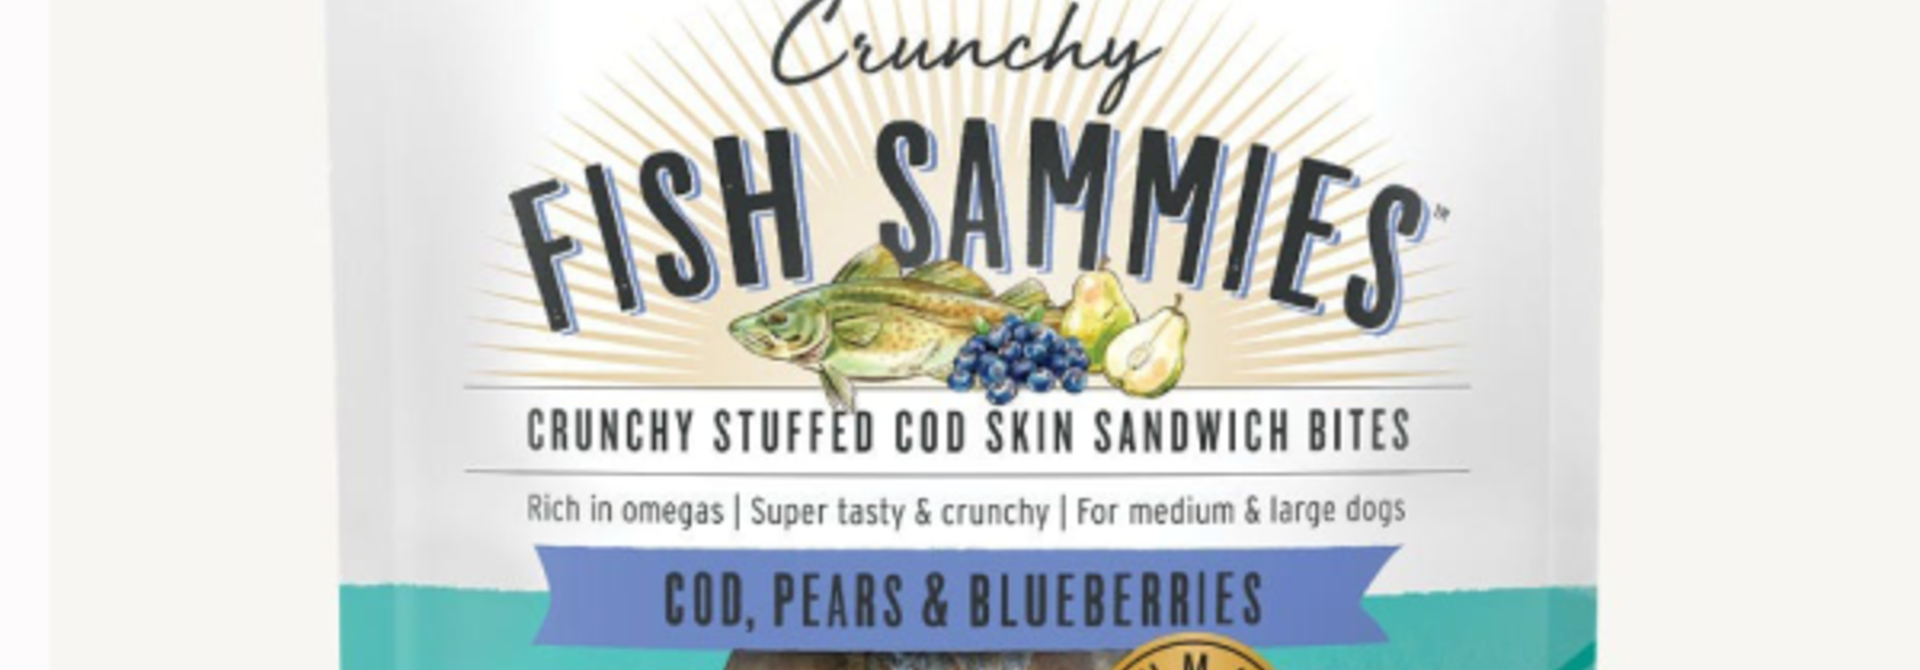 Crunchy Fish Sammies Cod w/Pears & Blueberries 3.5oz